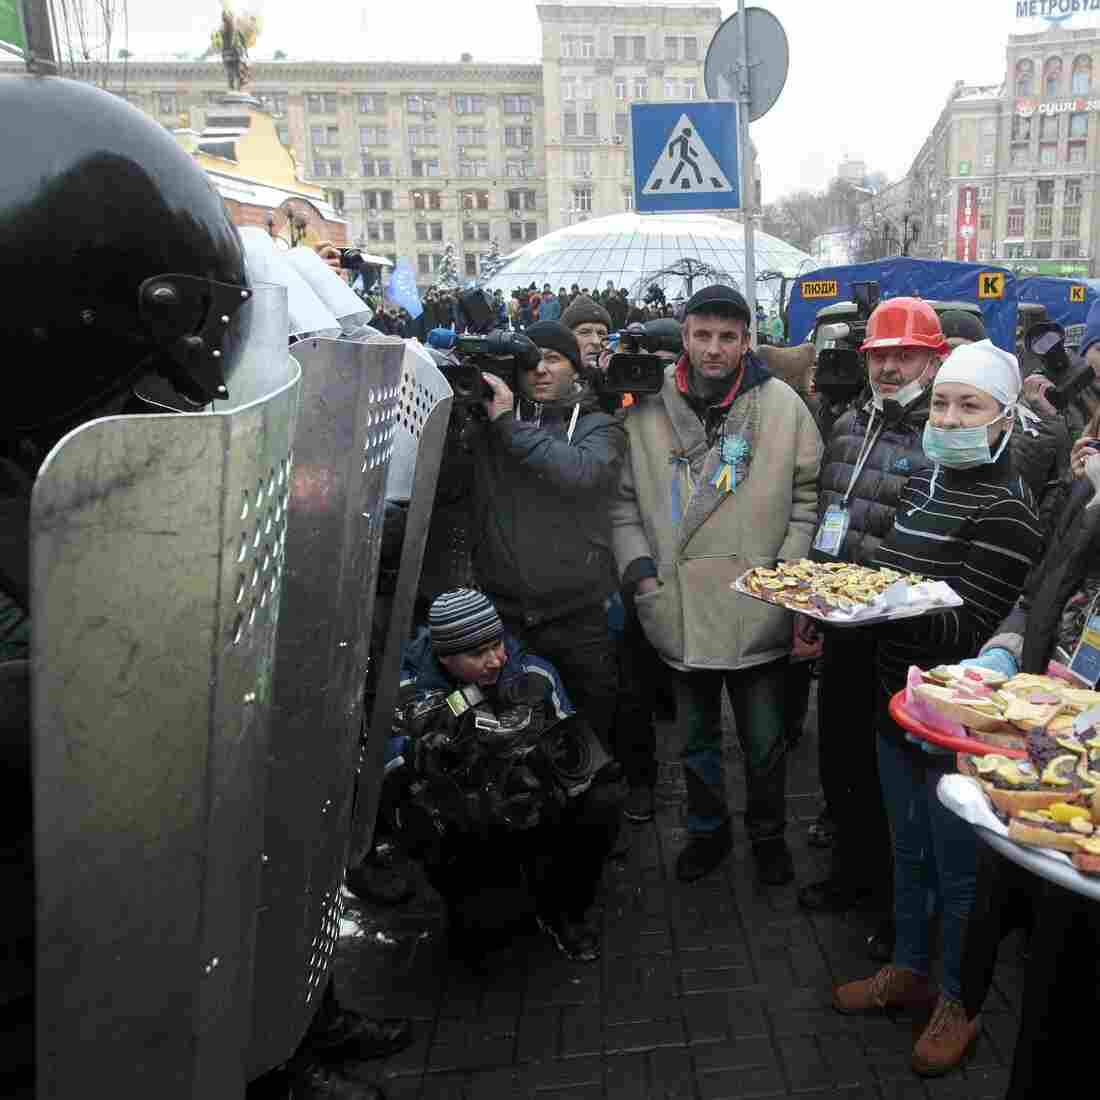 Activists who had backed Ukraine's plan to form closer ties to the European Union try to give food to riot police officers preparing to block the Independence Square in Kiev Monday.